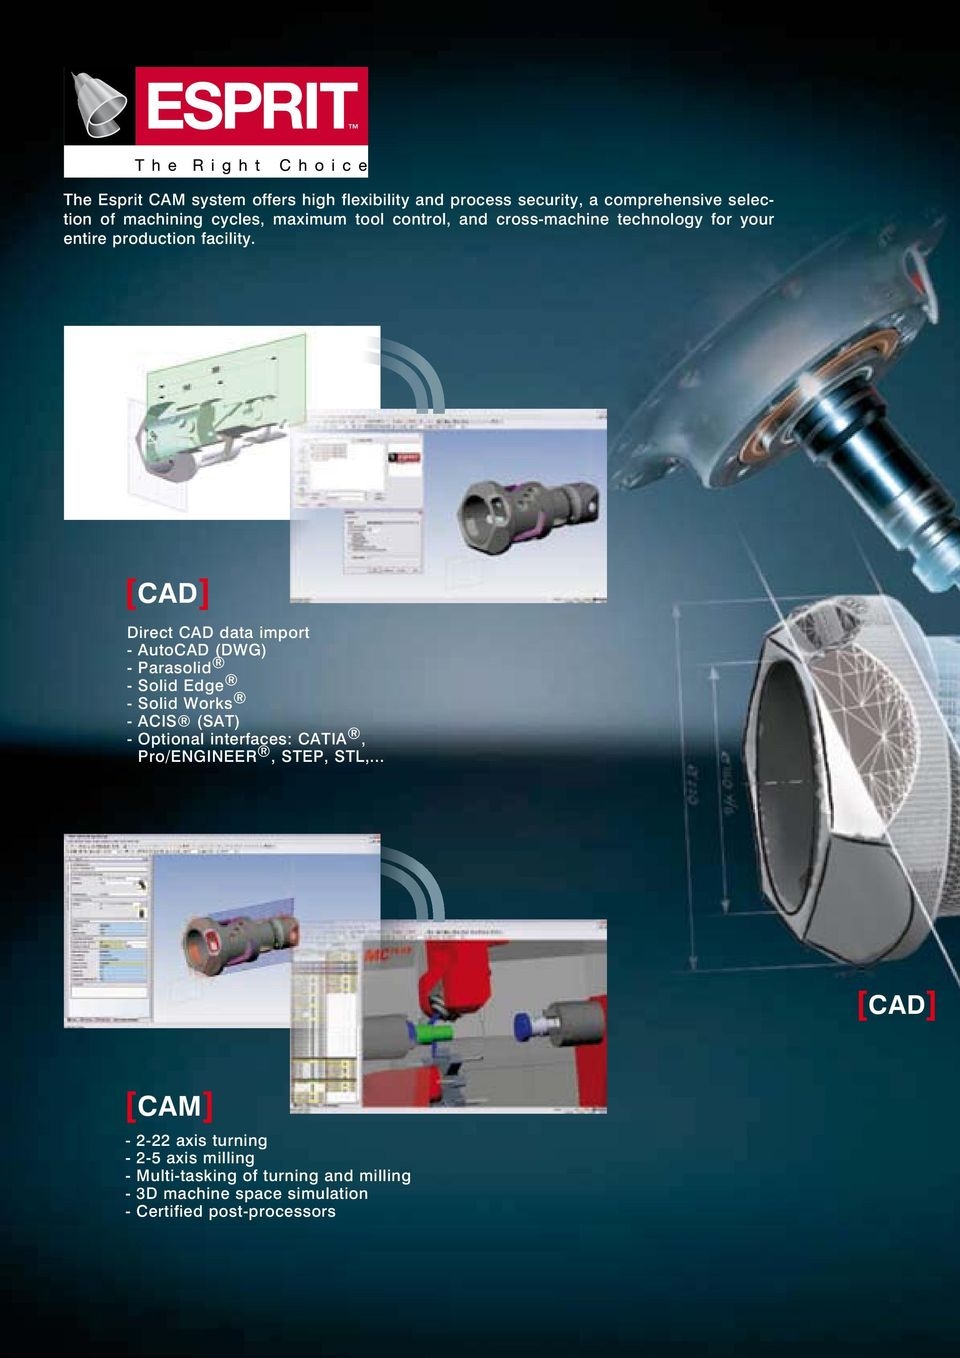 [CAD] Direct CAD data import - AutoCAD (DWG) - Parasolid - Solid Edge - Solid Works - ACIS (SAT) - Optional interfaces: CATIA,